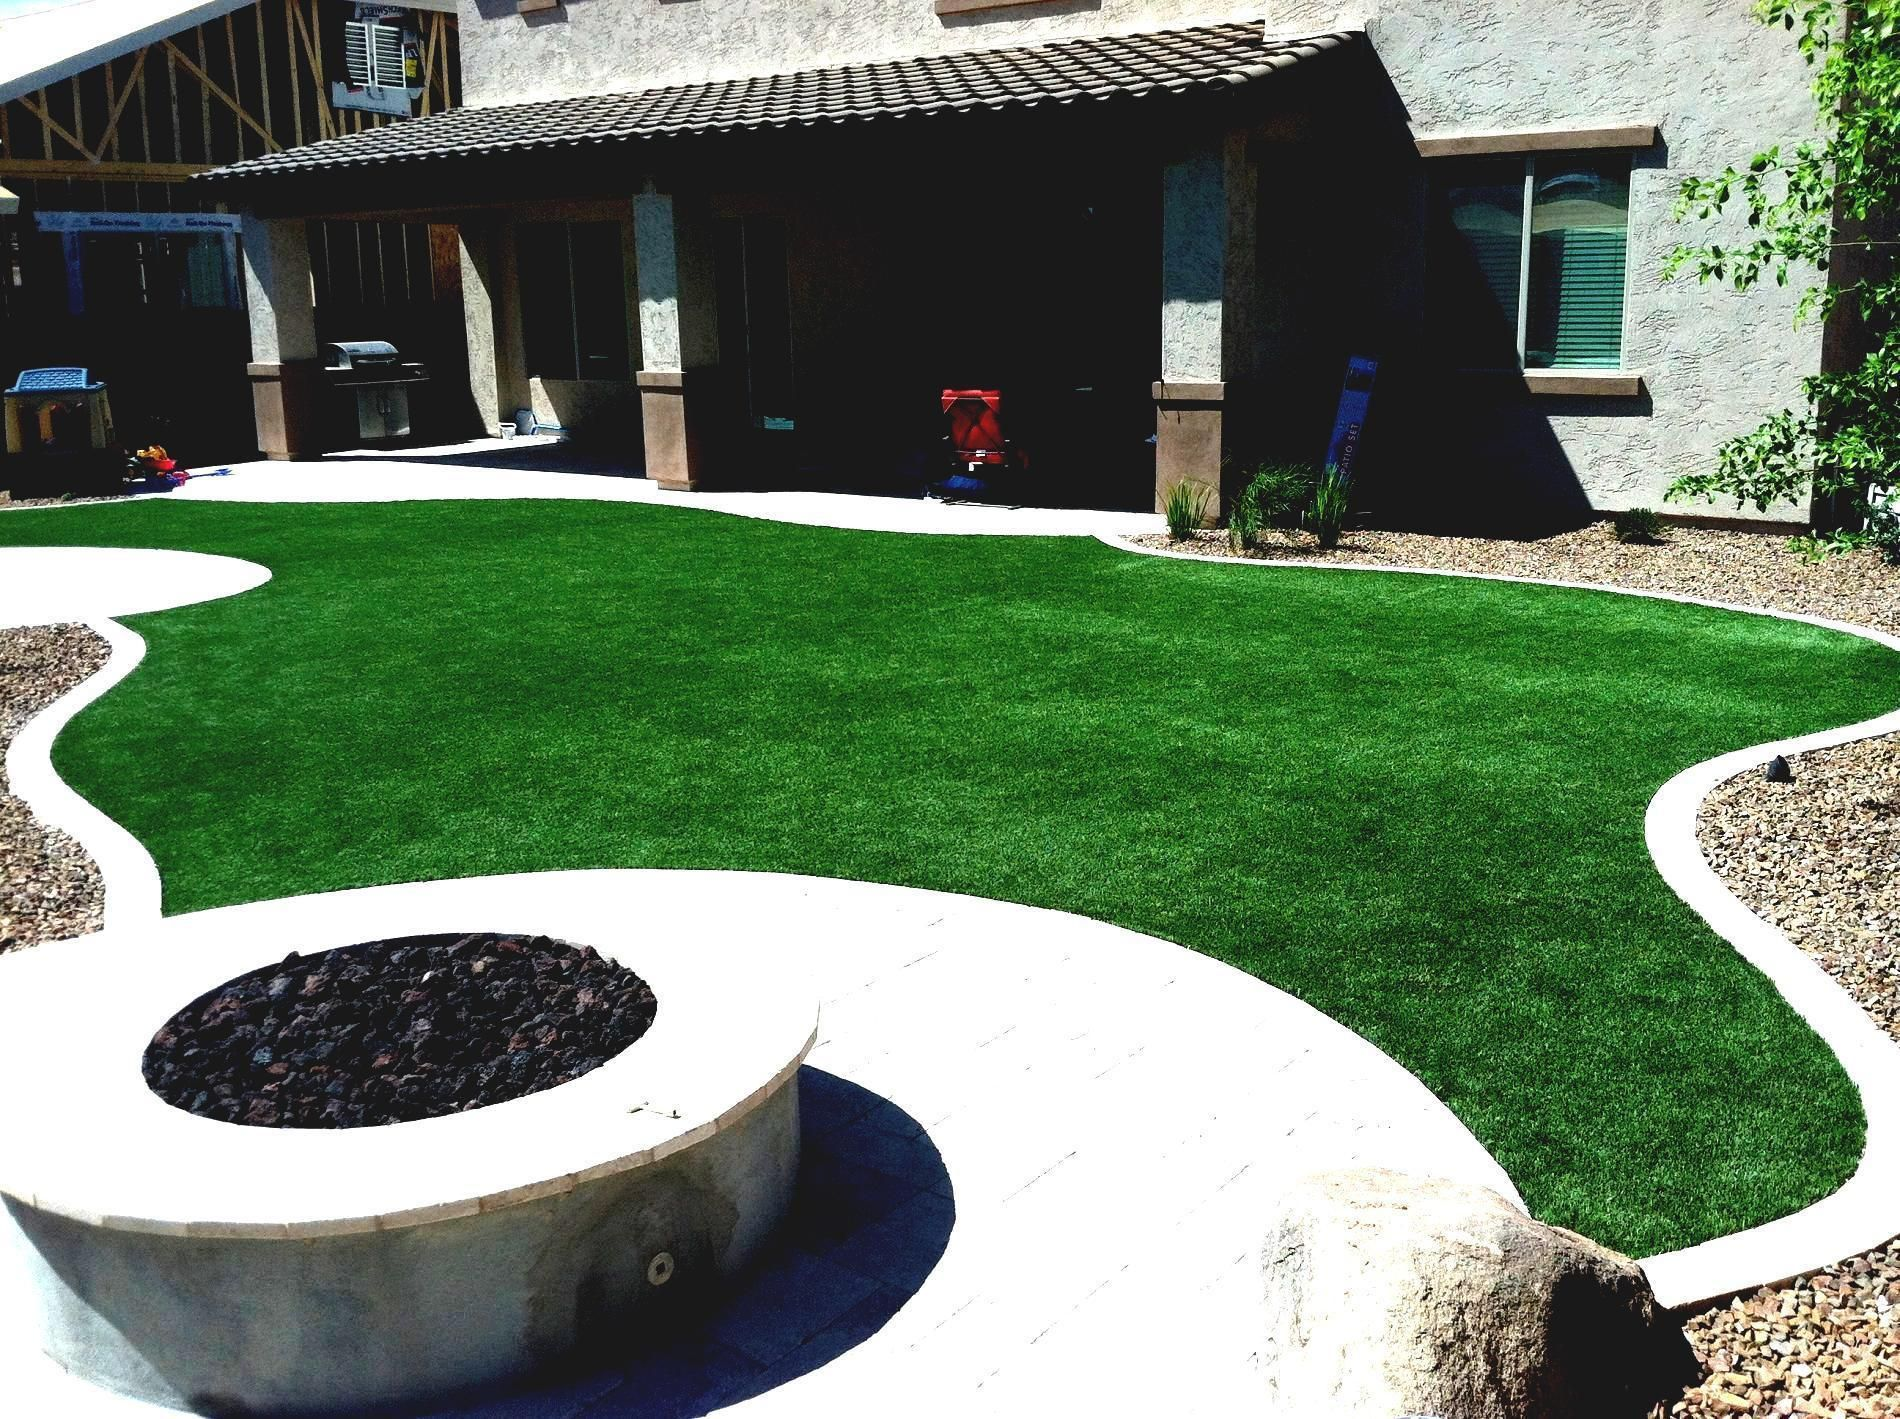 13 Genius Concepts Of How To Build How Much To Landscape A Backyard In 2021 Backyard Landscaping Costs Paver Patio Cost